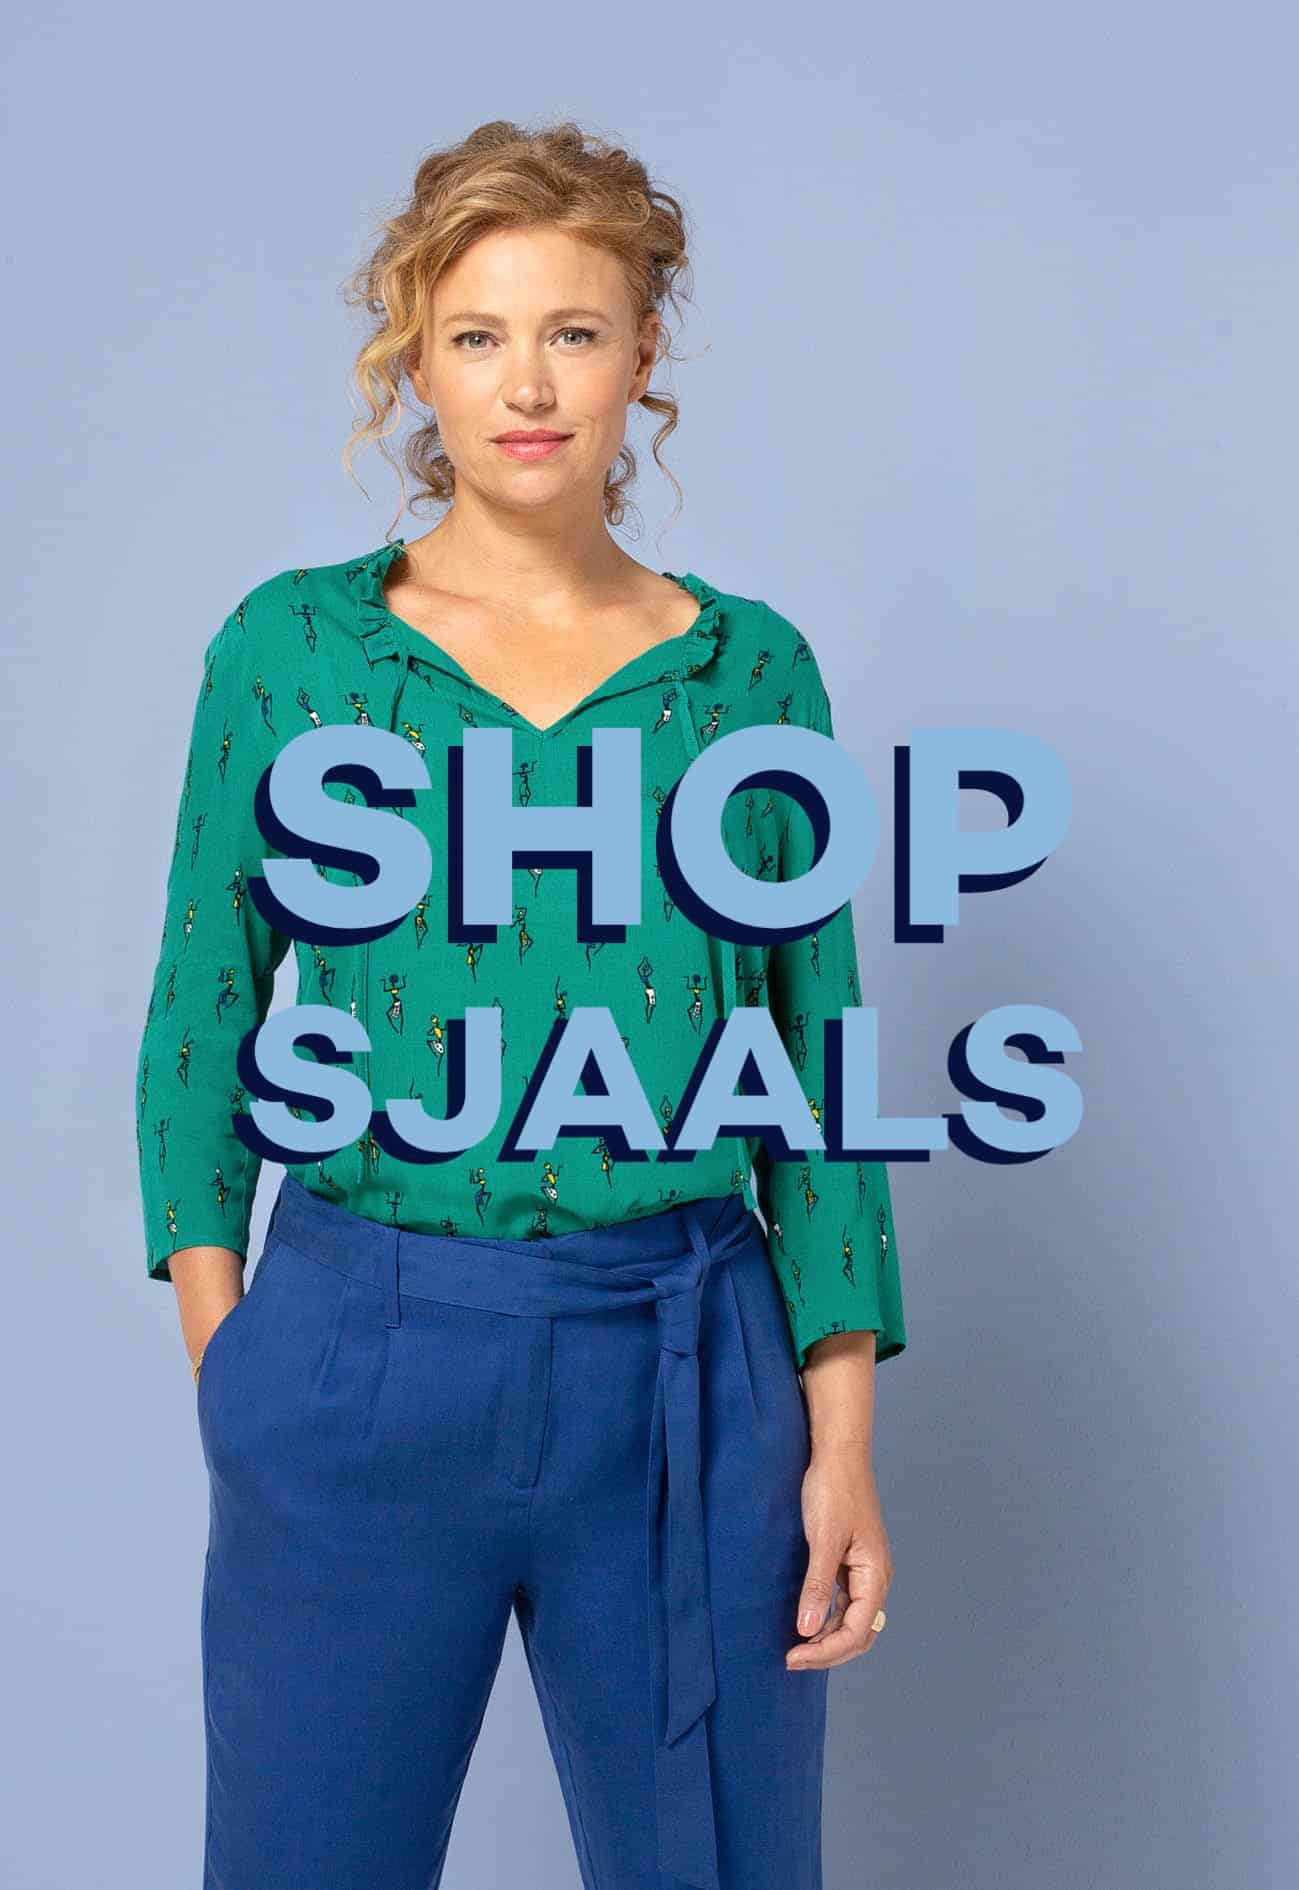 SHOP SJAALS